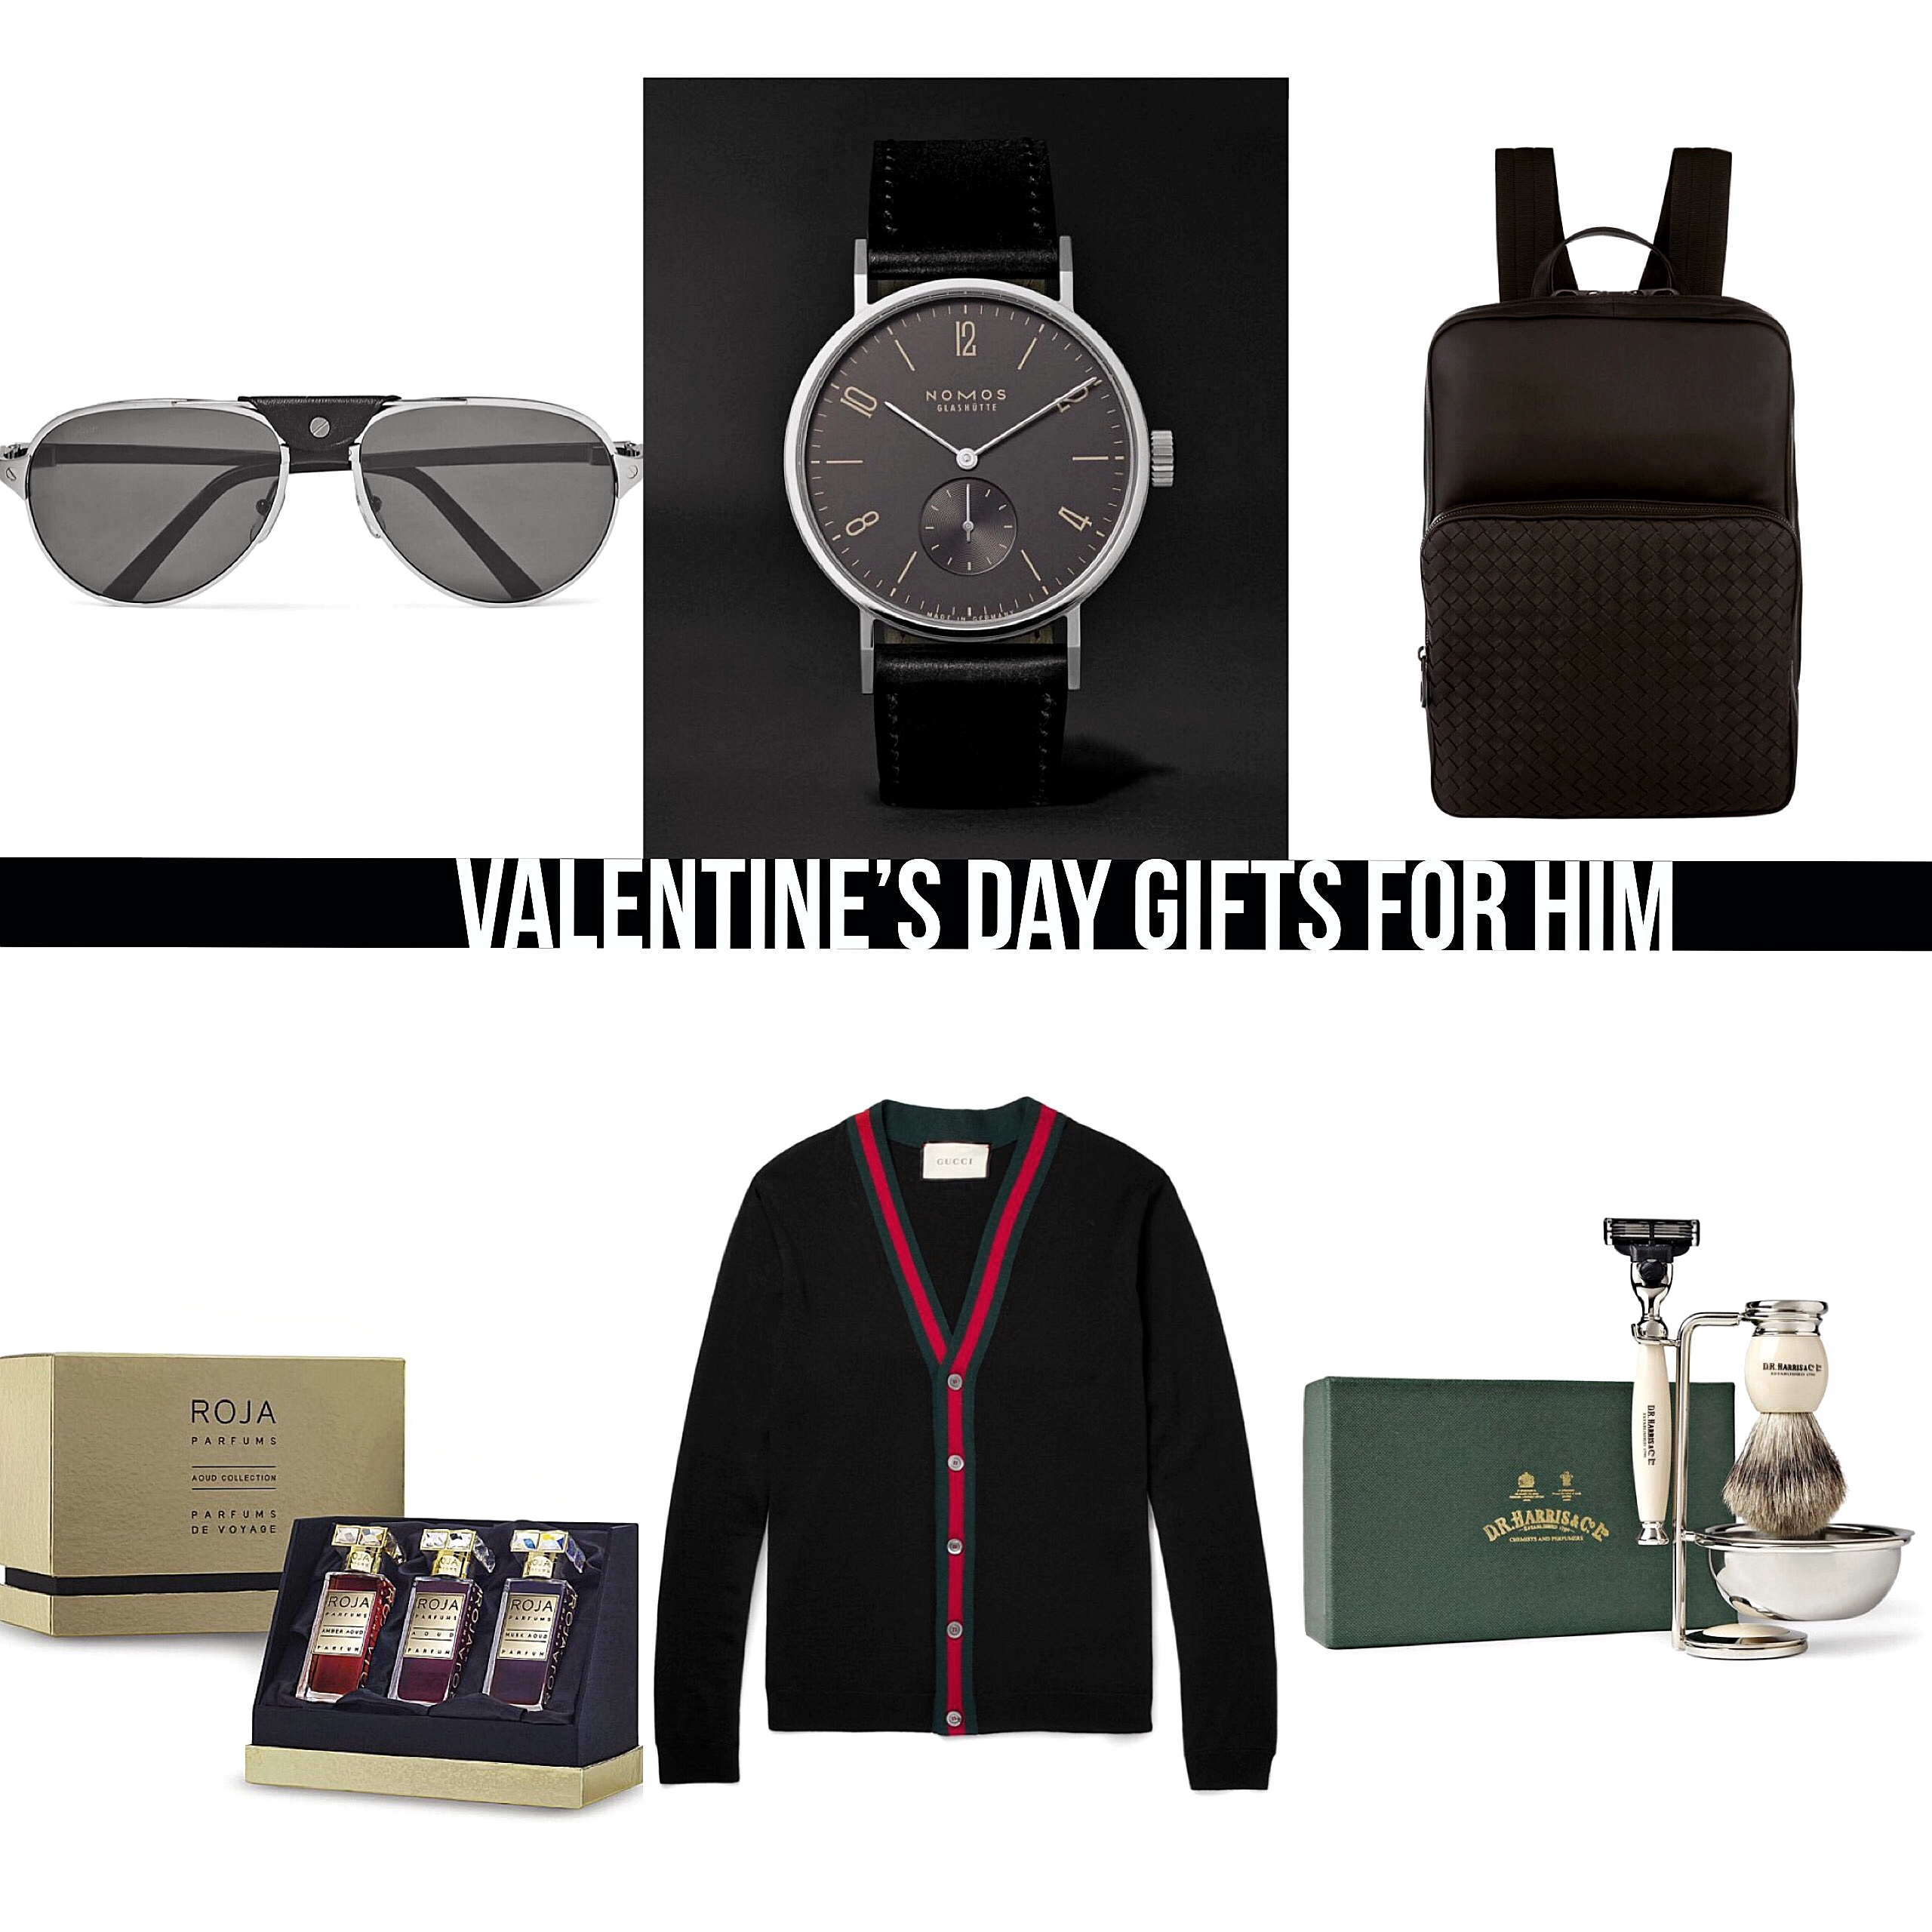 WHAT TO BUY HIM FOR VALENTINES!